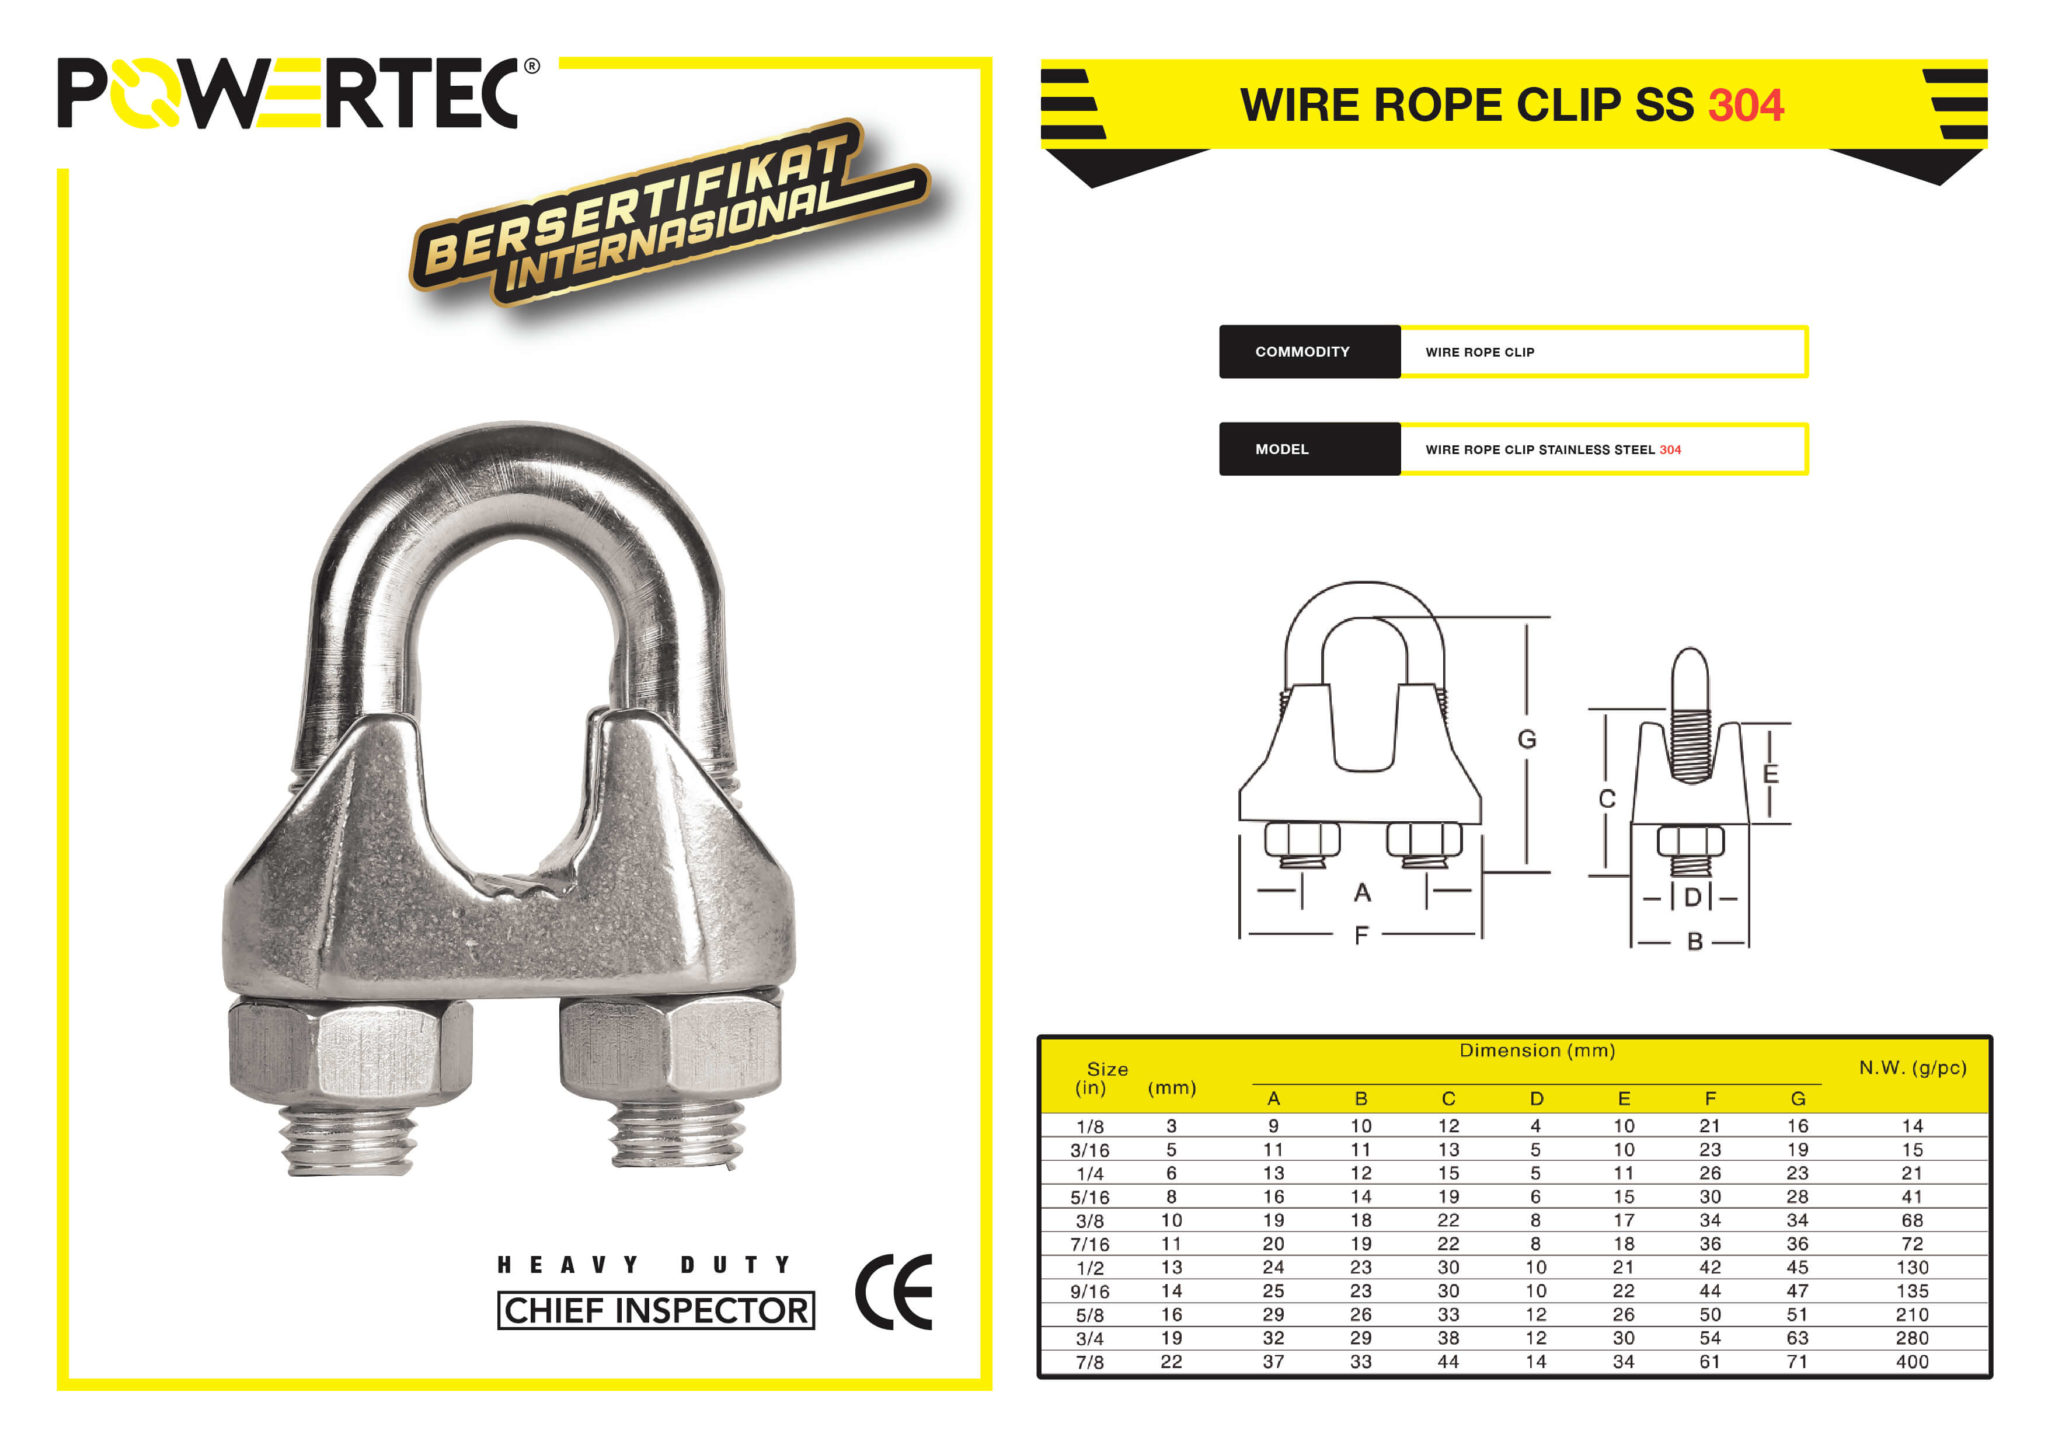 POWERTEC WIRE ROPE CLIP SS 304 BROCHURE